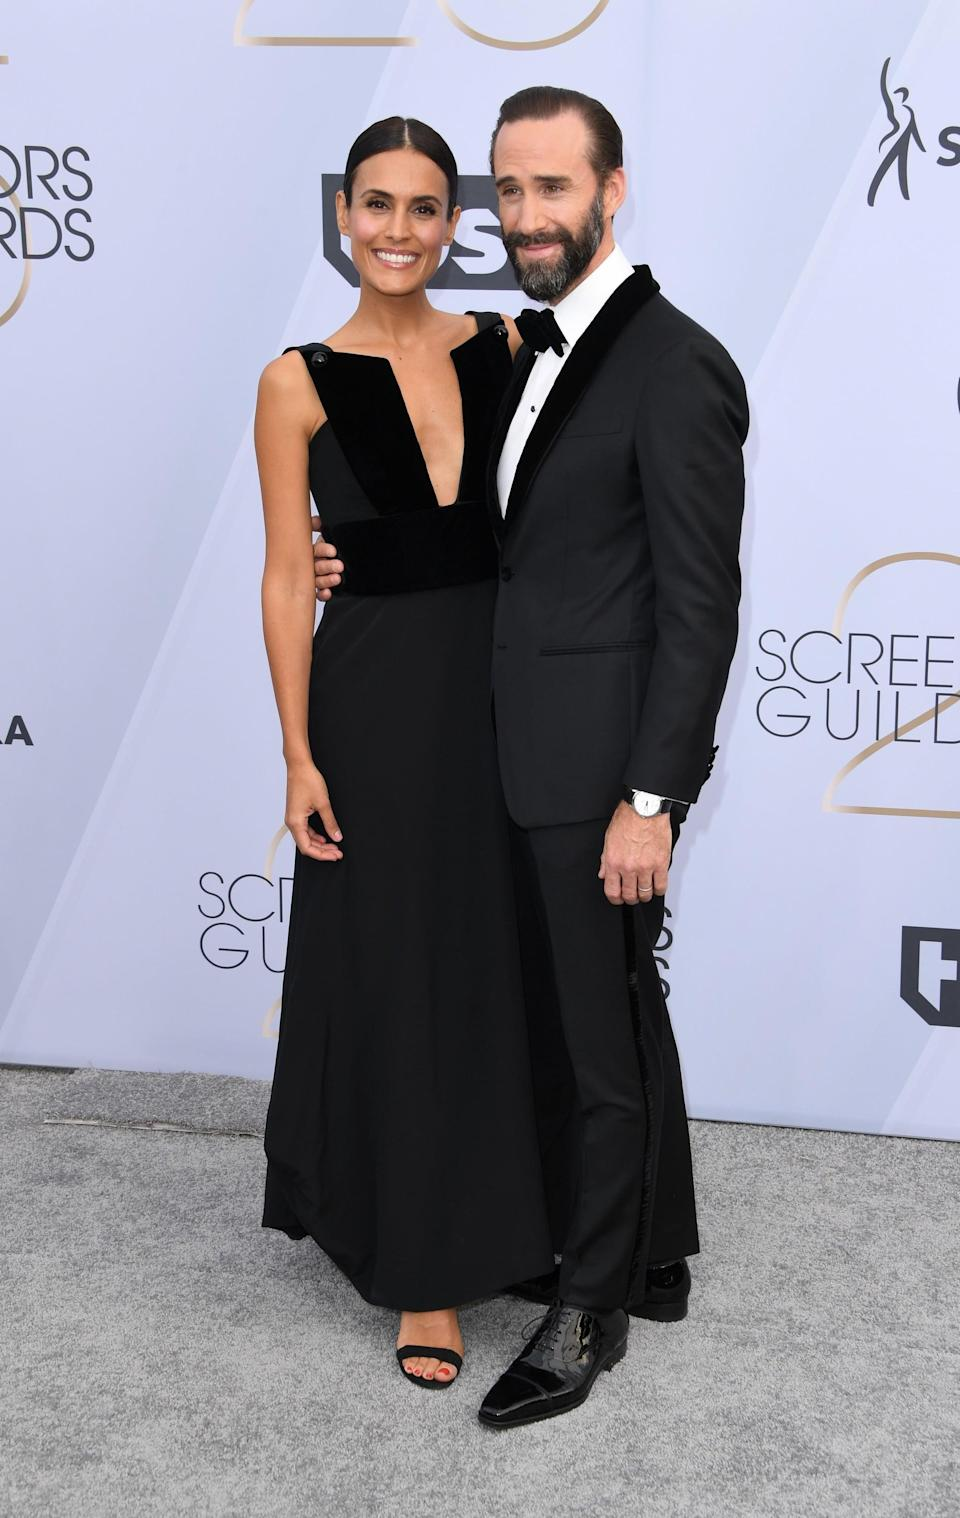 <p>Joseph wearing a black suit from Strong Suit by Ilaria Urbinati Collection and Montblanc cufflinks. Maria wearing a matching gown.</p>